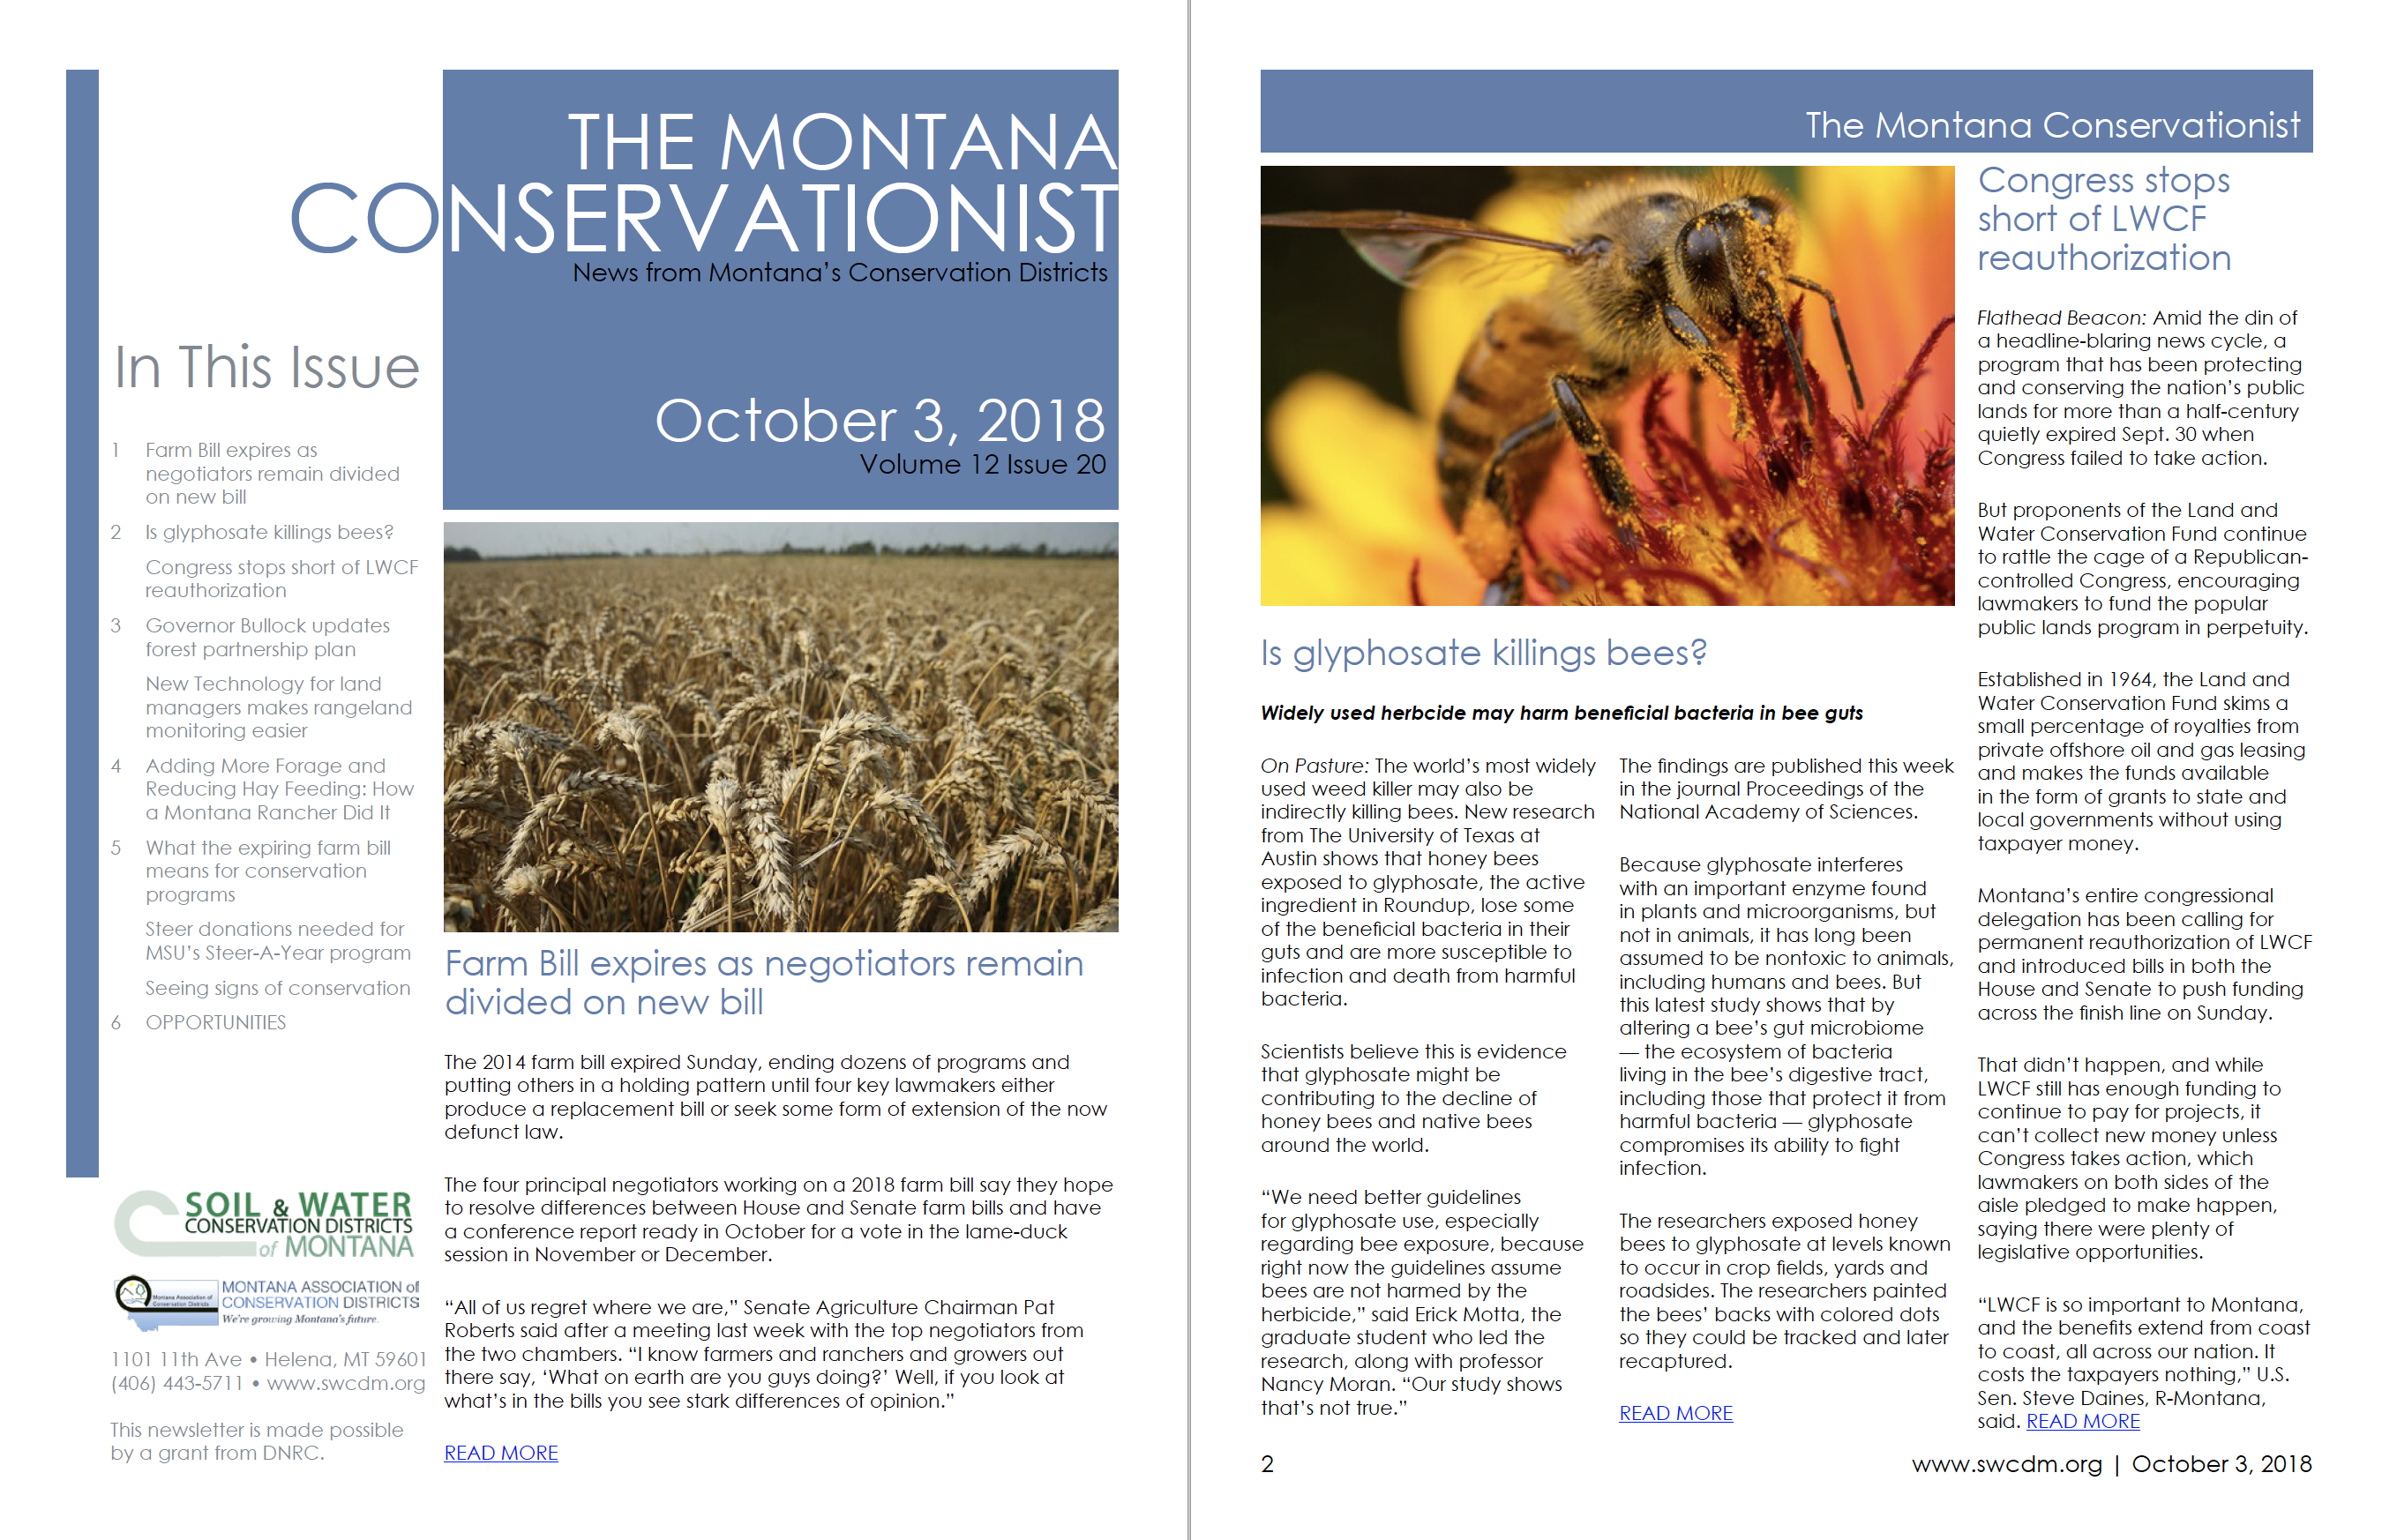 The Montana Conservationist